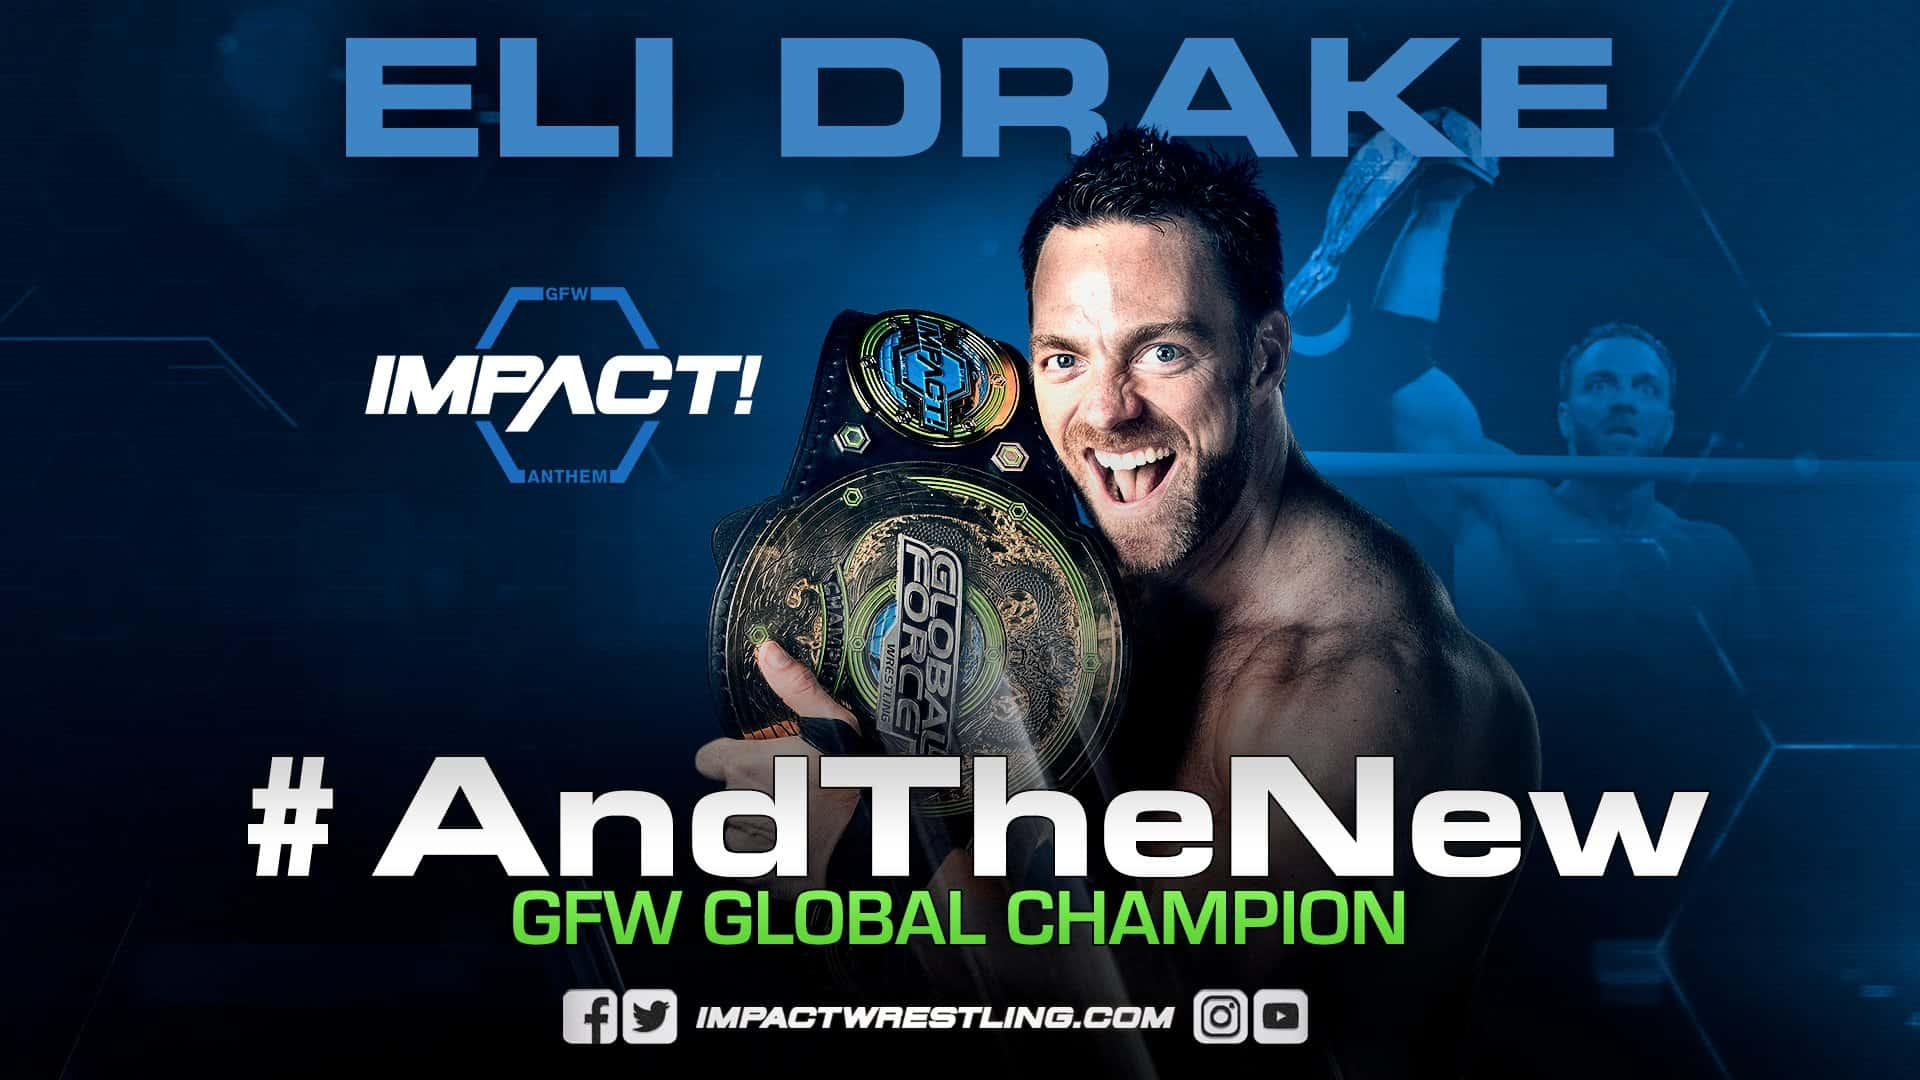 Eli Drake's Time is Now and that's just a Fact of Life - Promo Photo Credit: Impact Wrestling/GFW Twitter (https://twitter.com/IMPACTWRESTLING)